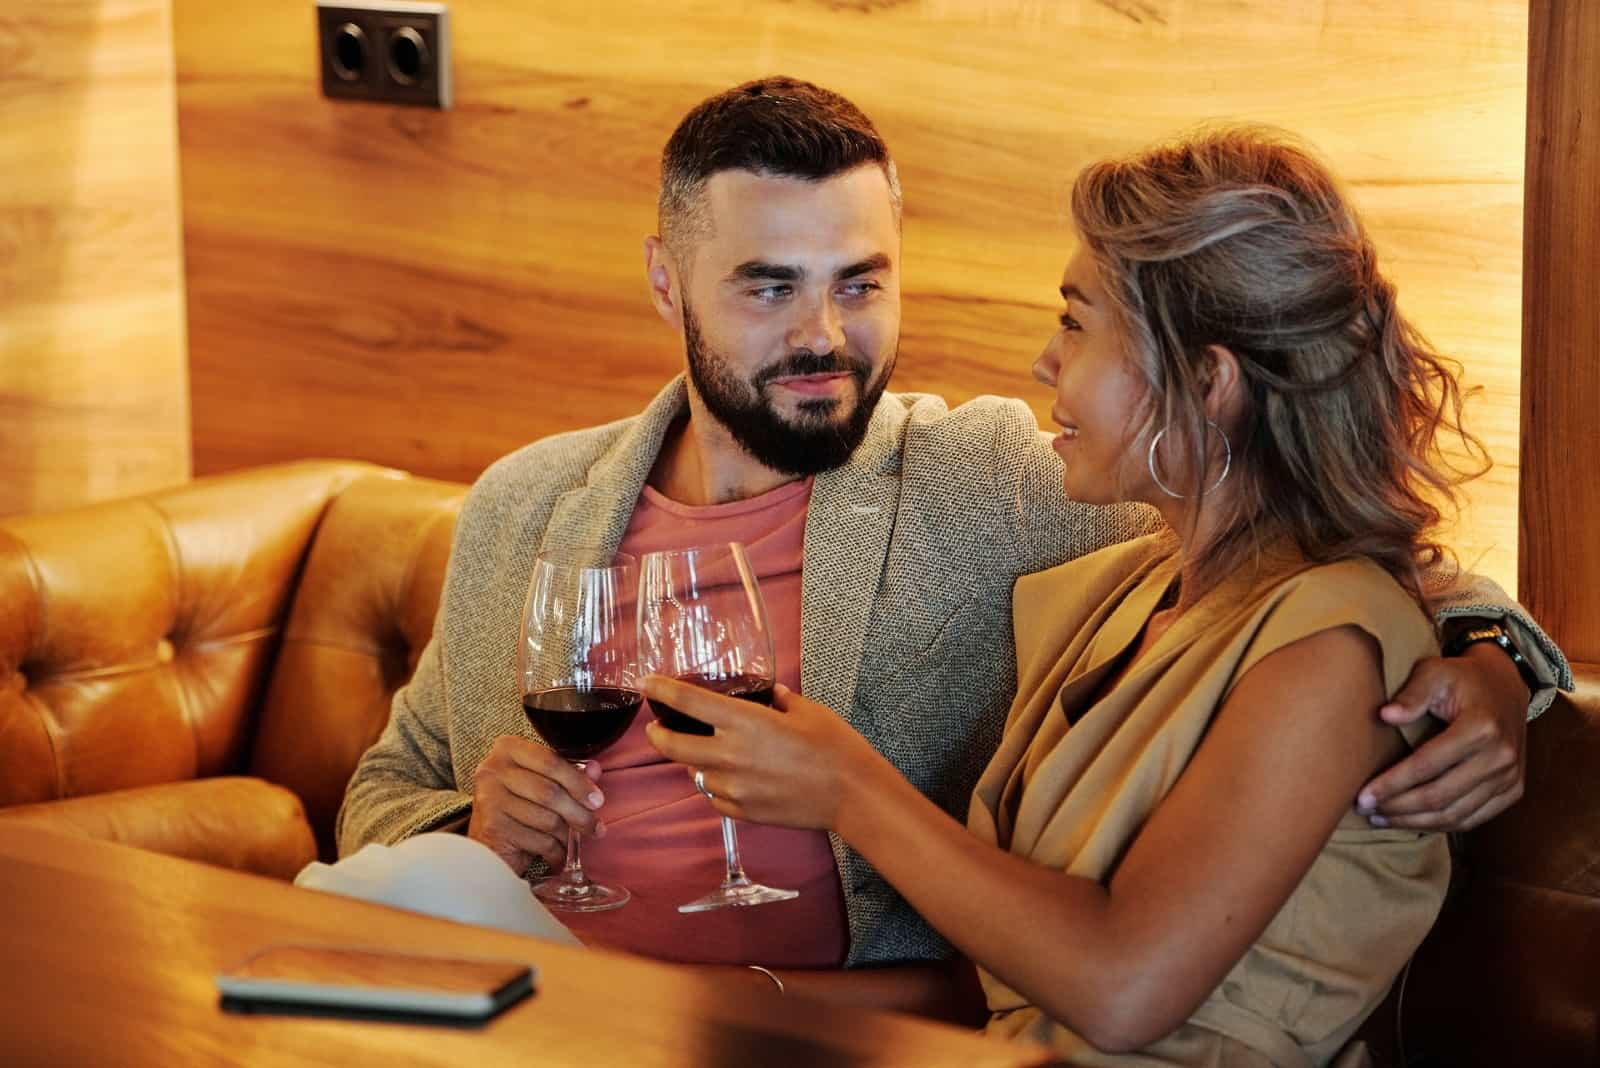 man and woman making eye contact while holding wine glasses